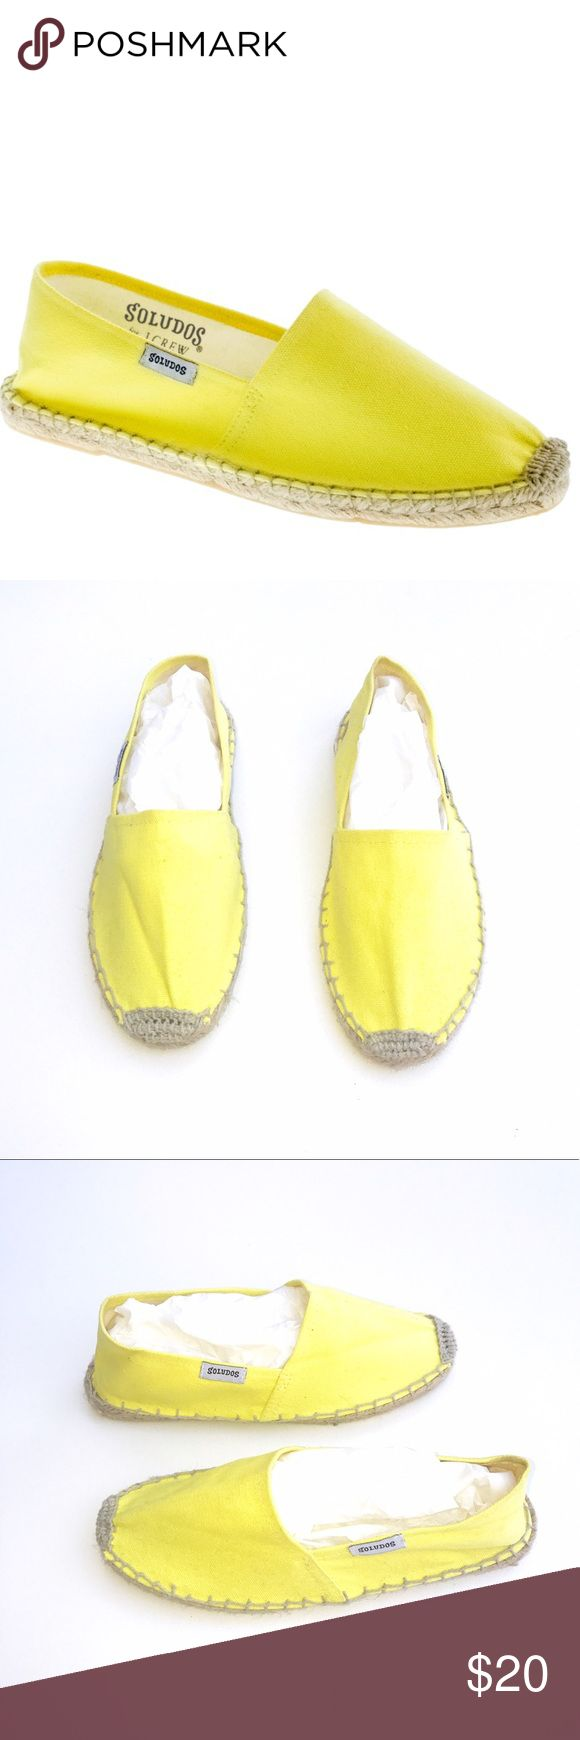 J. Crew Soludos Yellow Espadrilles Yellow espadrille flats by Soludos for J. Crew. Never worn. Small marks from storage. Size 37.  •lowball offers declined •no trades •ask all questions before buying •unfair ratings from buyers are reported & buyer will be blocked - I don't misrepresent my products; what you see is exactly what you get & my prices are way more than fair. Please be kind as I always strive to be kind to you Soludos Shoes Espadrilles